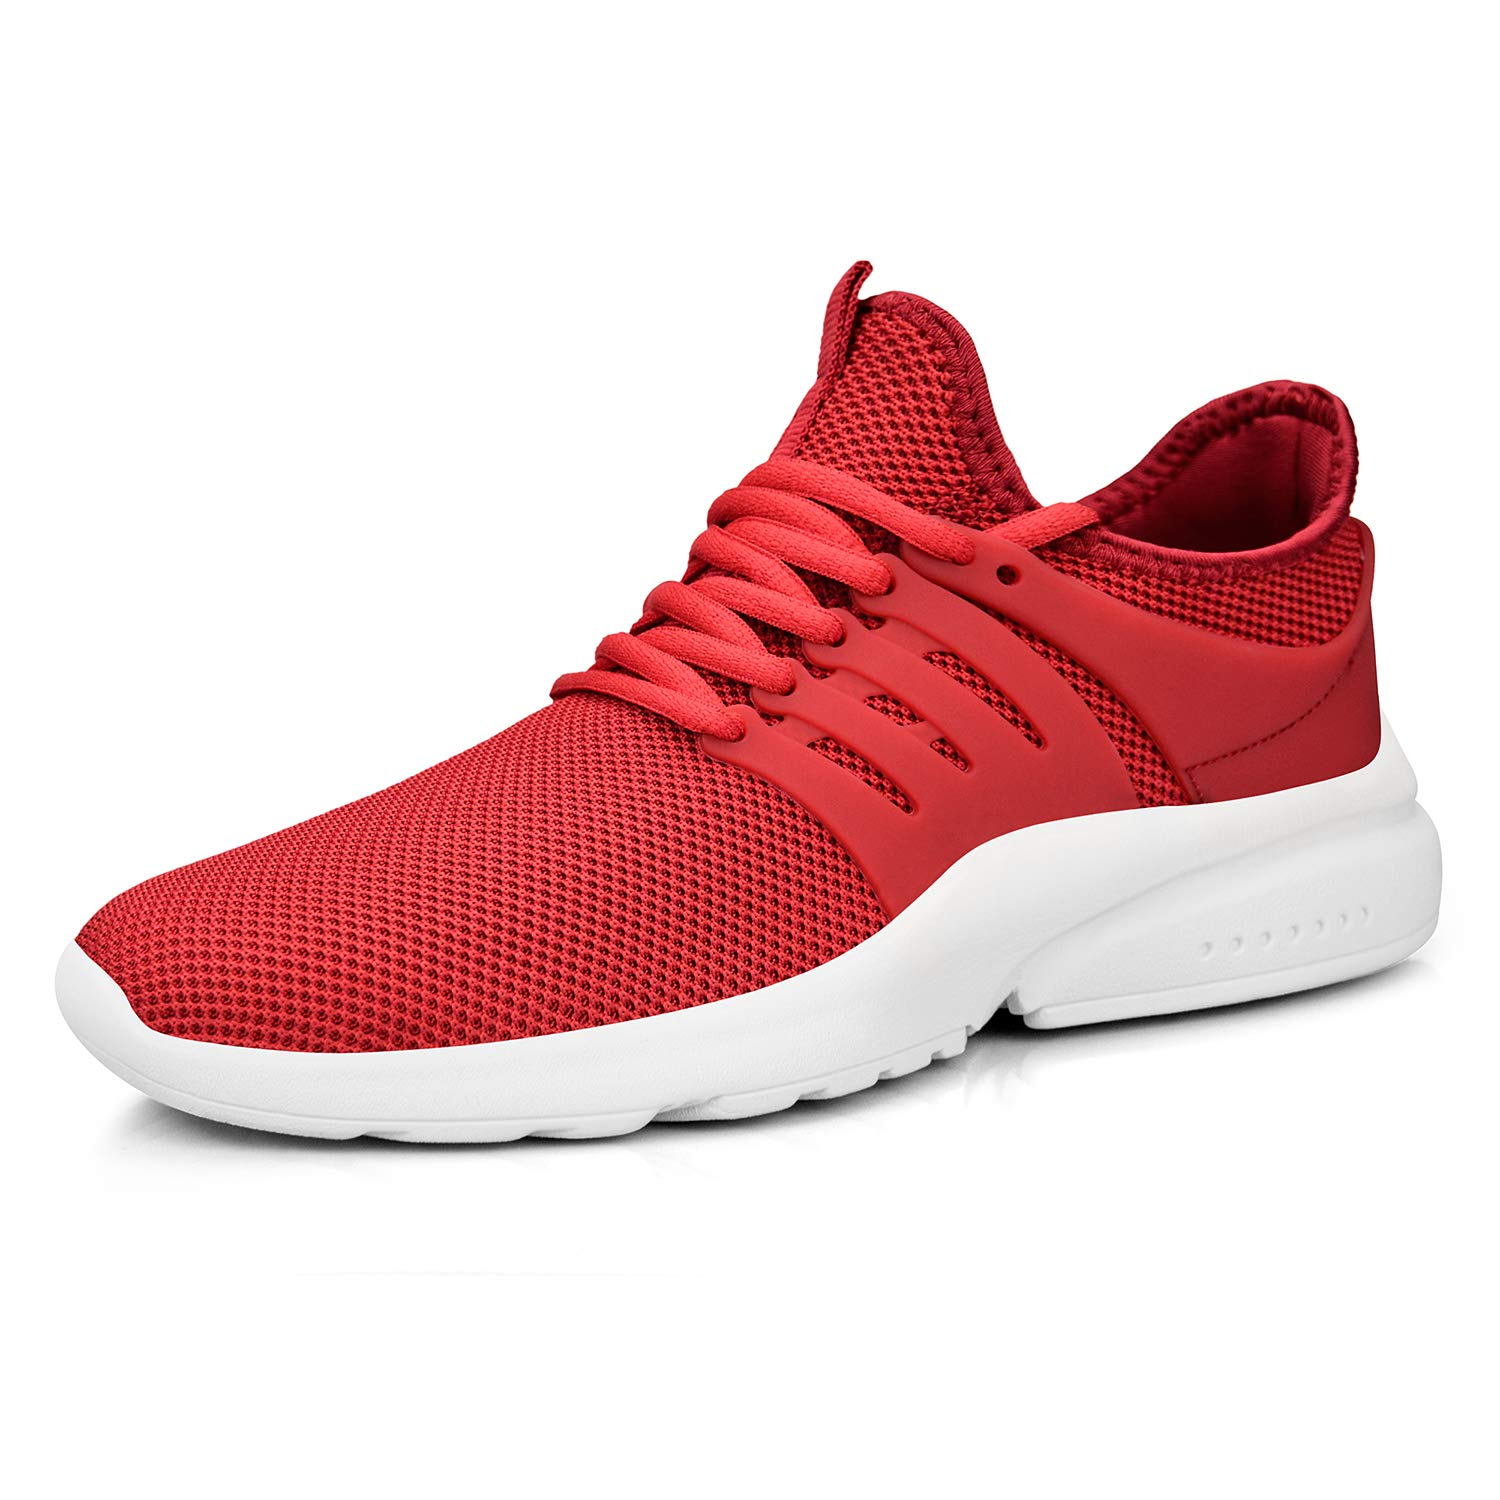 Feetmat Men's Running Shoes Lightweight Non Slip Breathable Mesh Sneakers Sports Athletic Walking Shoes Red White 6M by Feetmat